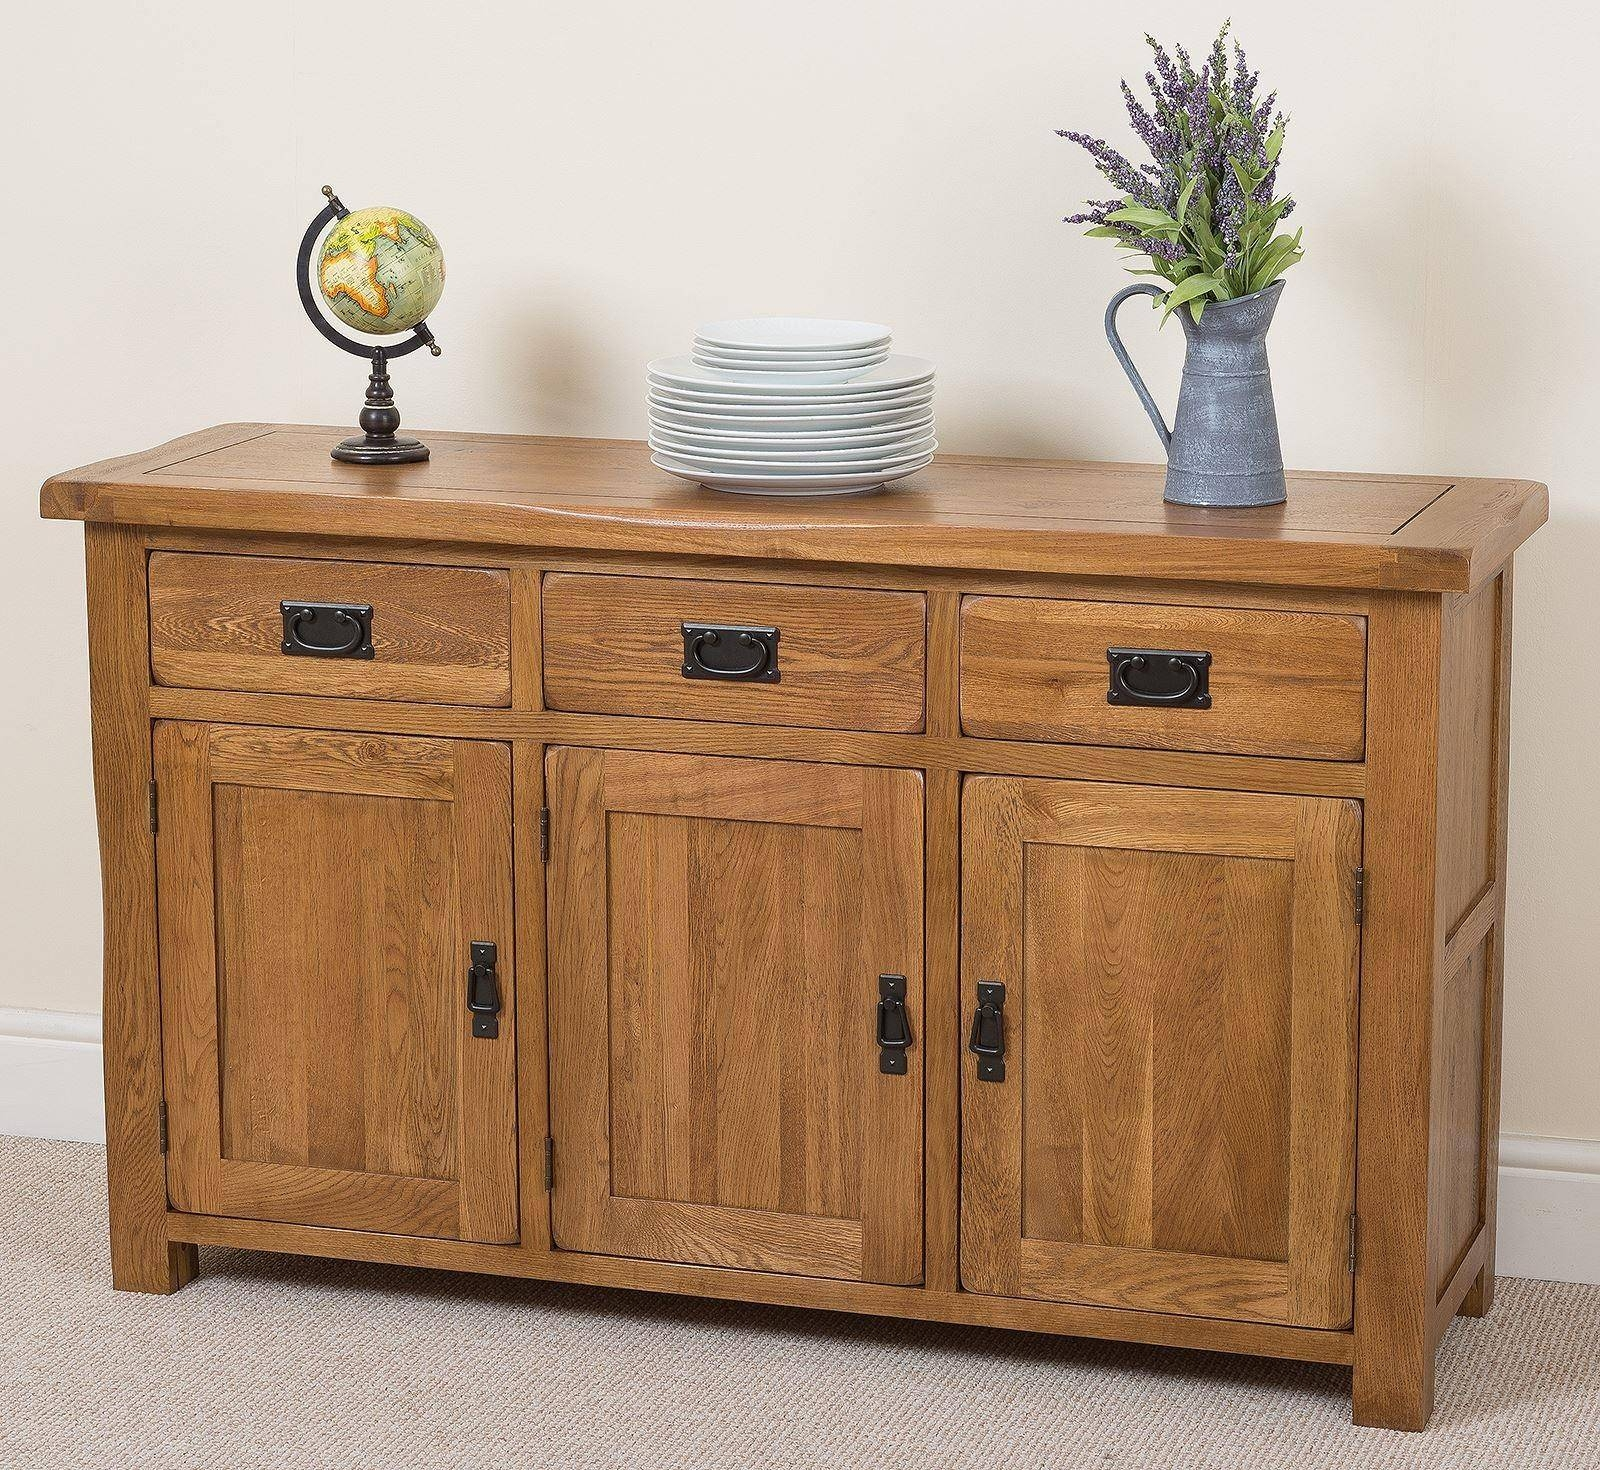 Cotswold Large Oak Sideboard | Free Uk Delivery throughout Storage Sideboards (Image 2 of 15)